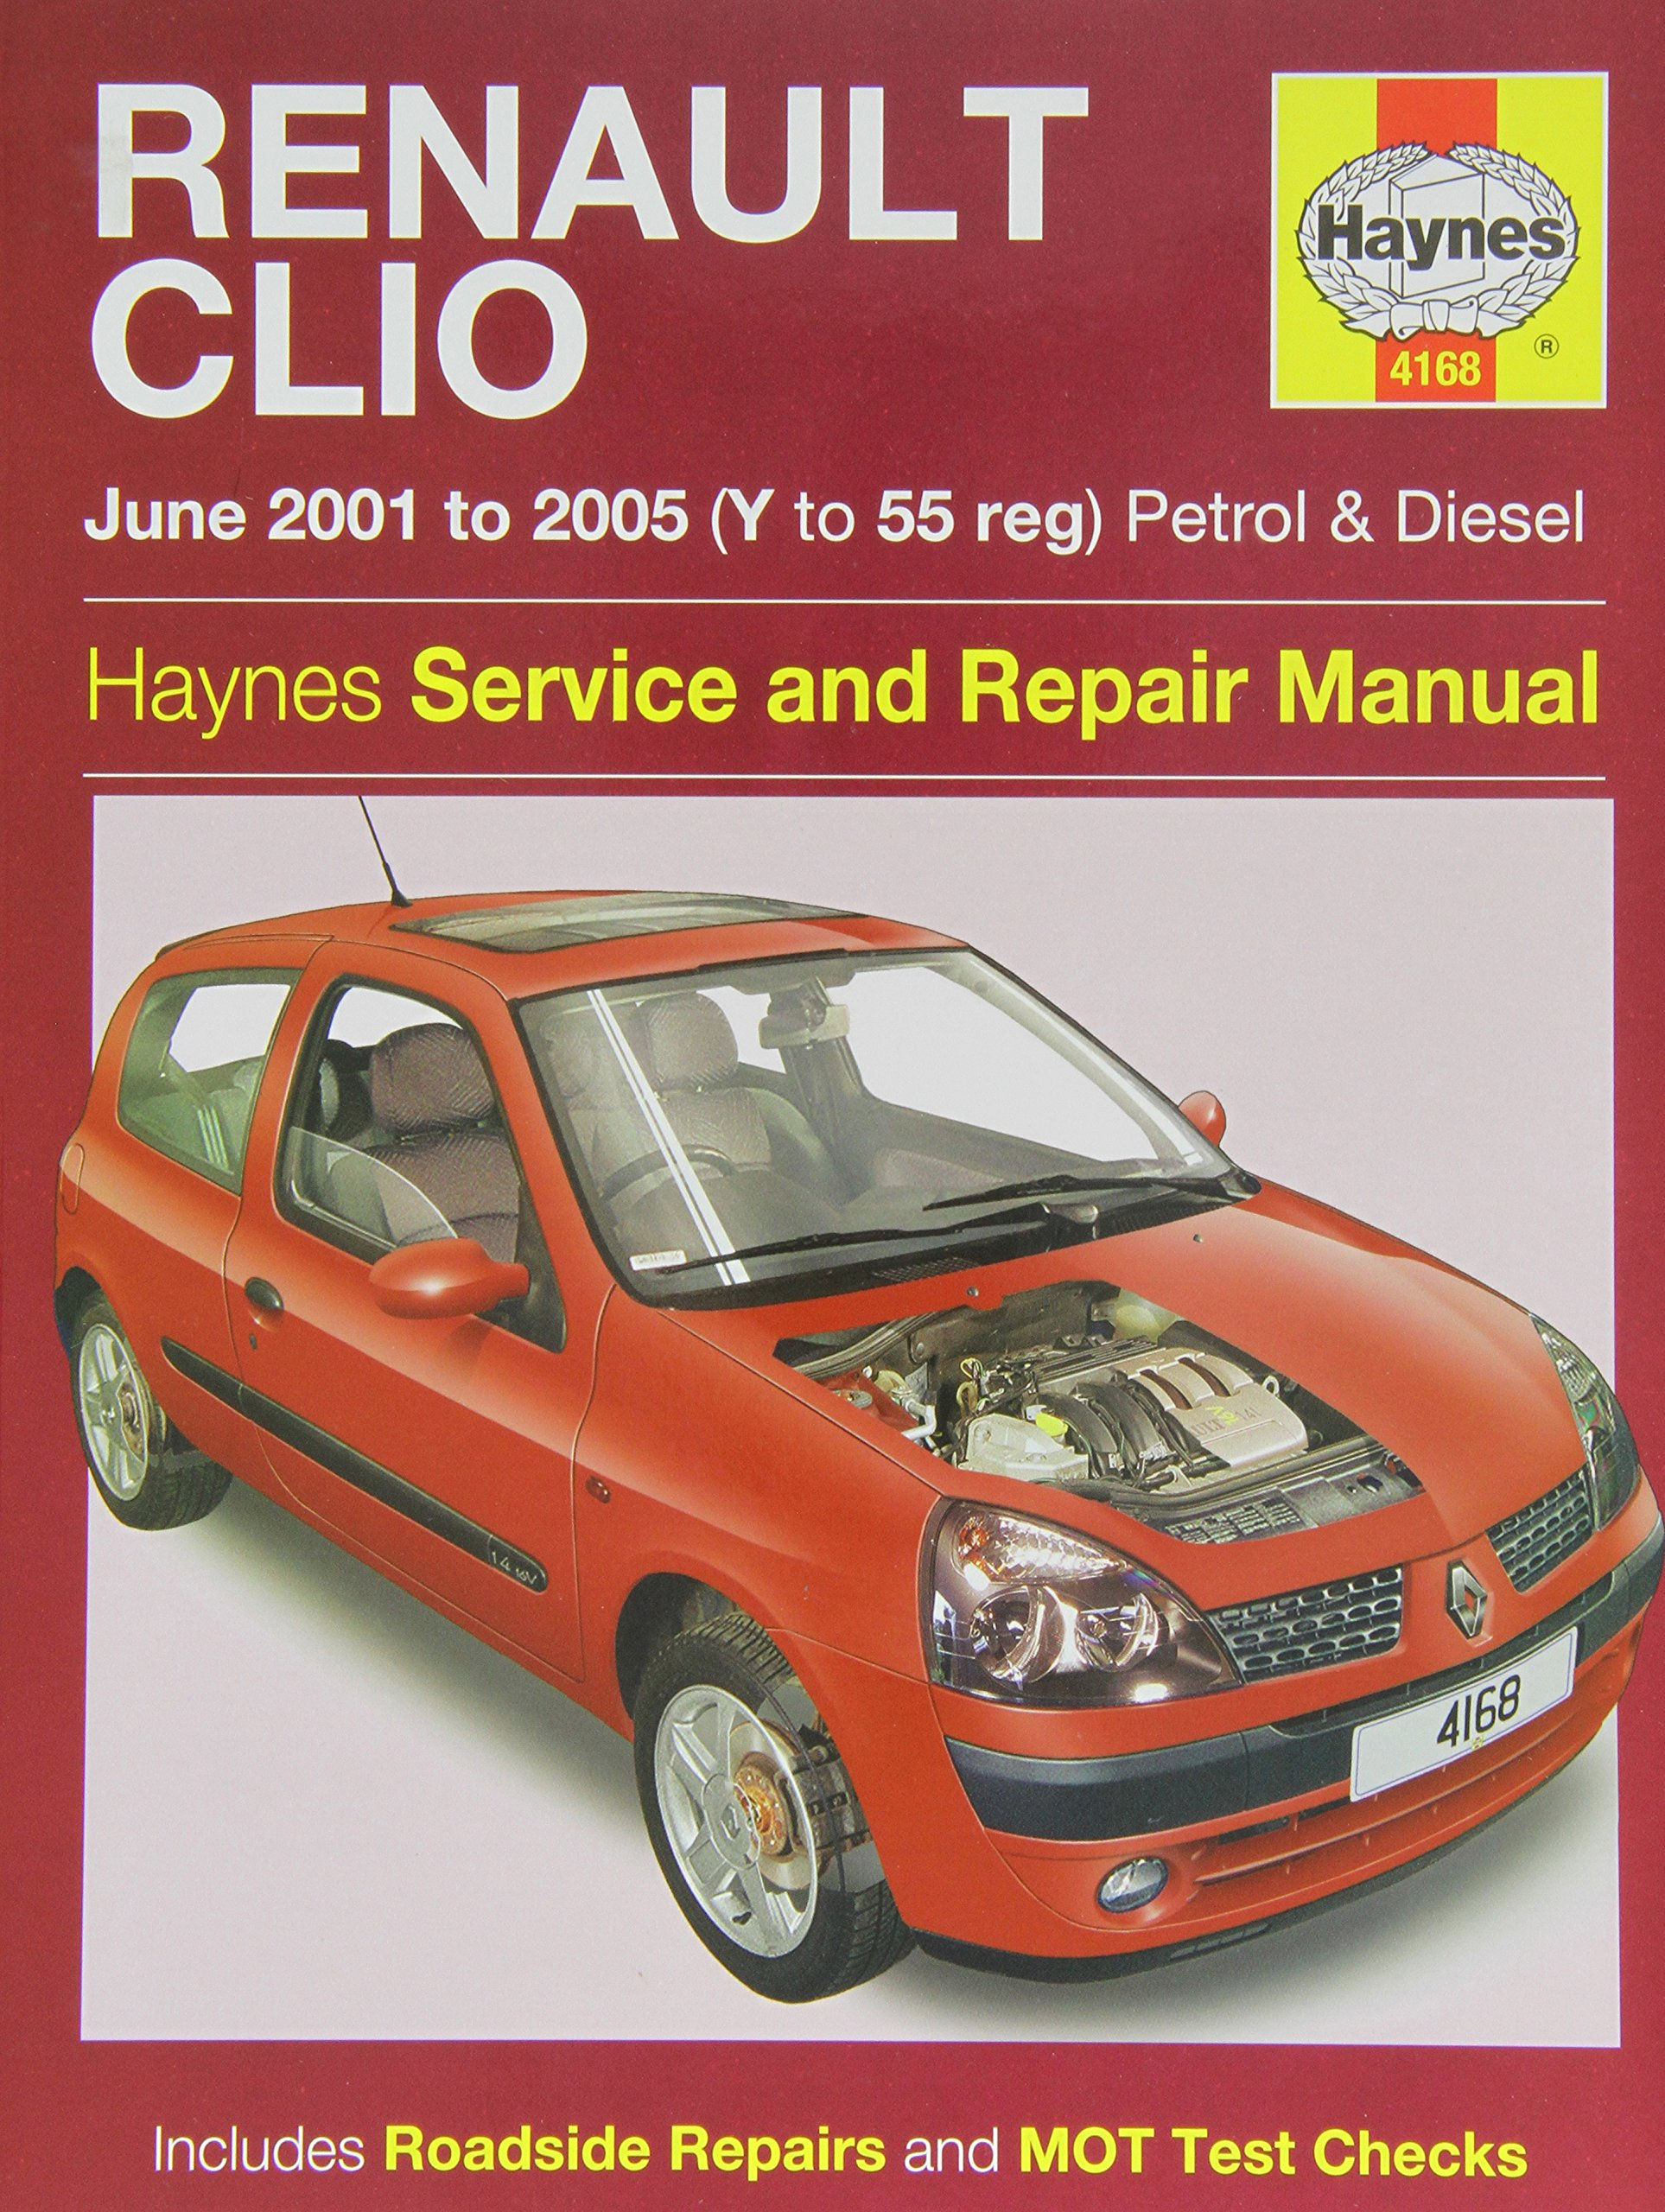 Renault Clio Petrol and Diesel Service and Repair Manual: 2001 to 2005 ( Haynes Service and Repair Ma: gill-peter-t-legg-a-k: 9781844257447:  Amazon.com: ...